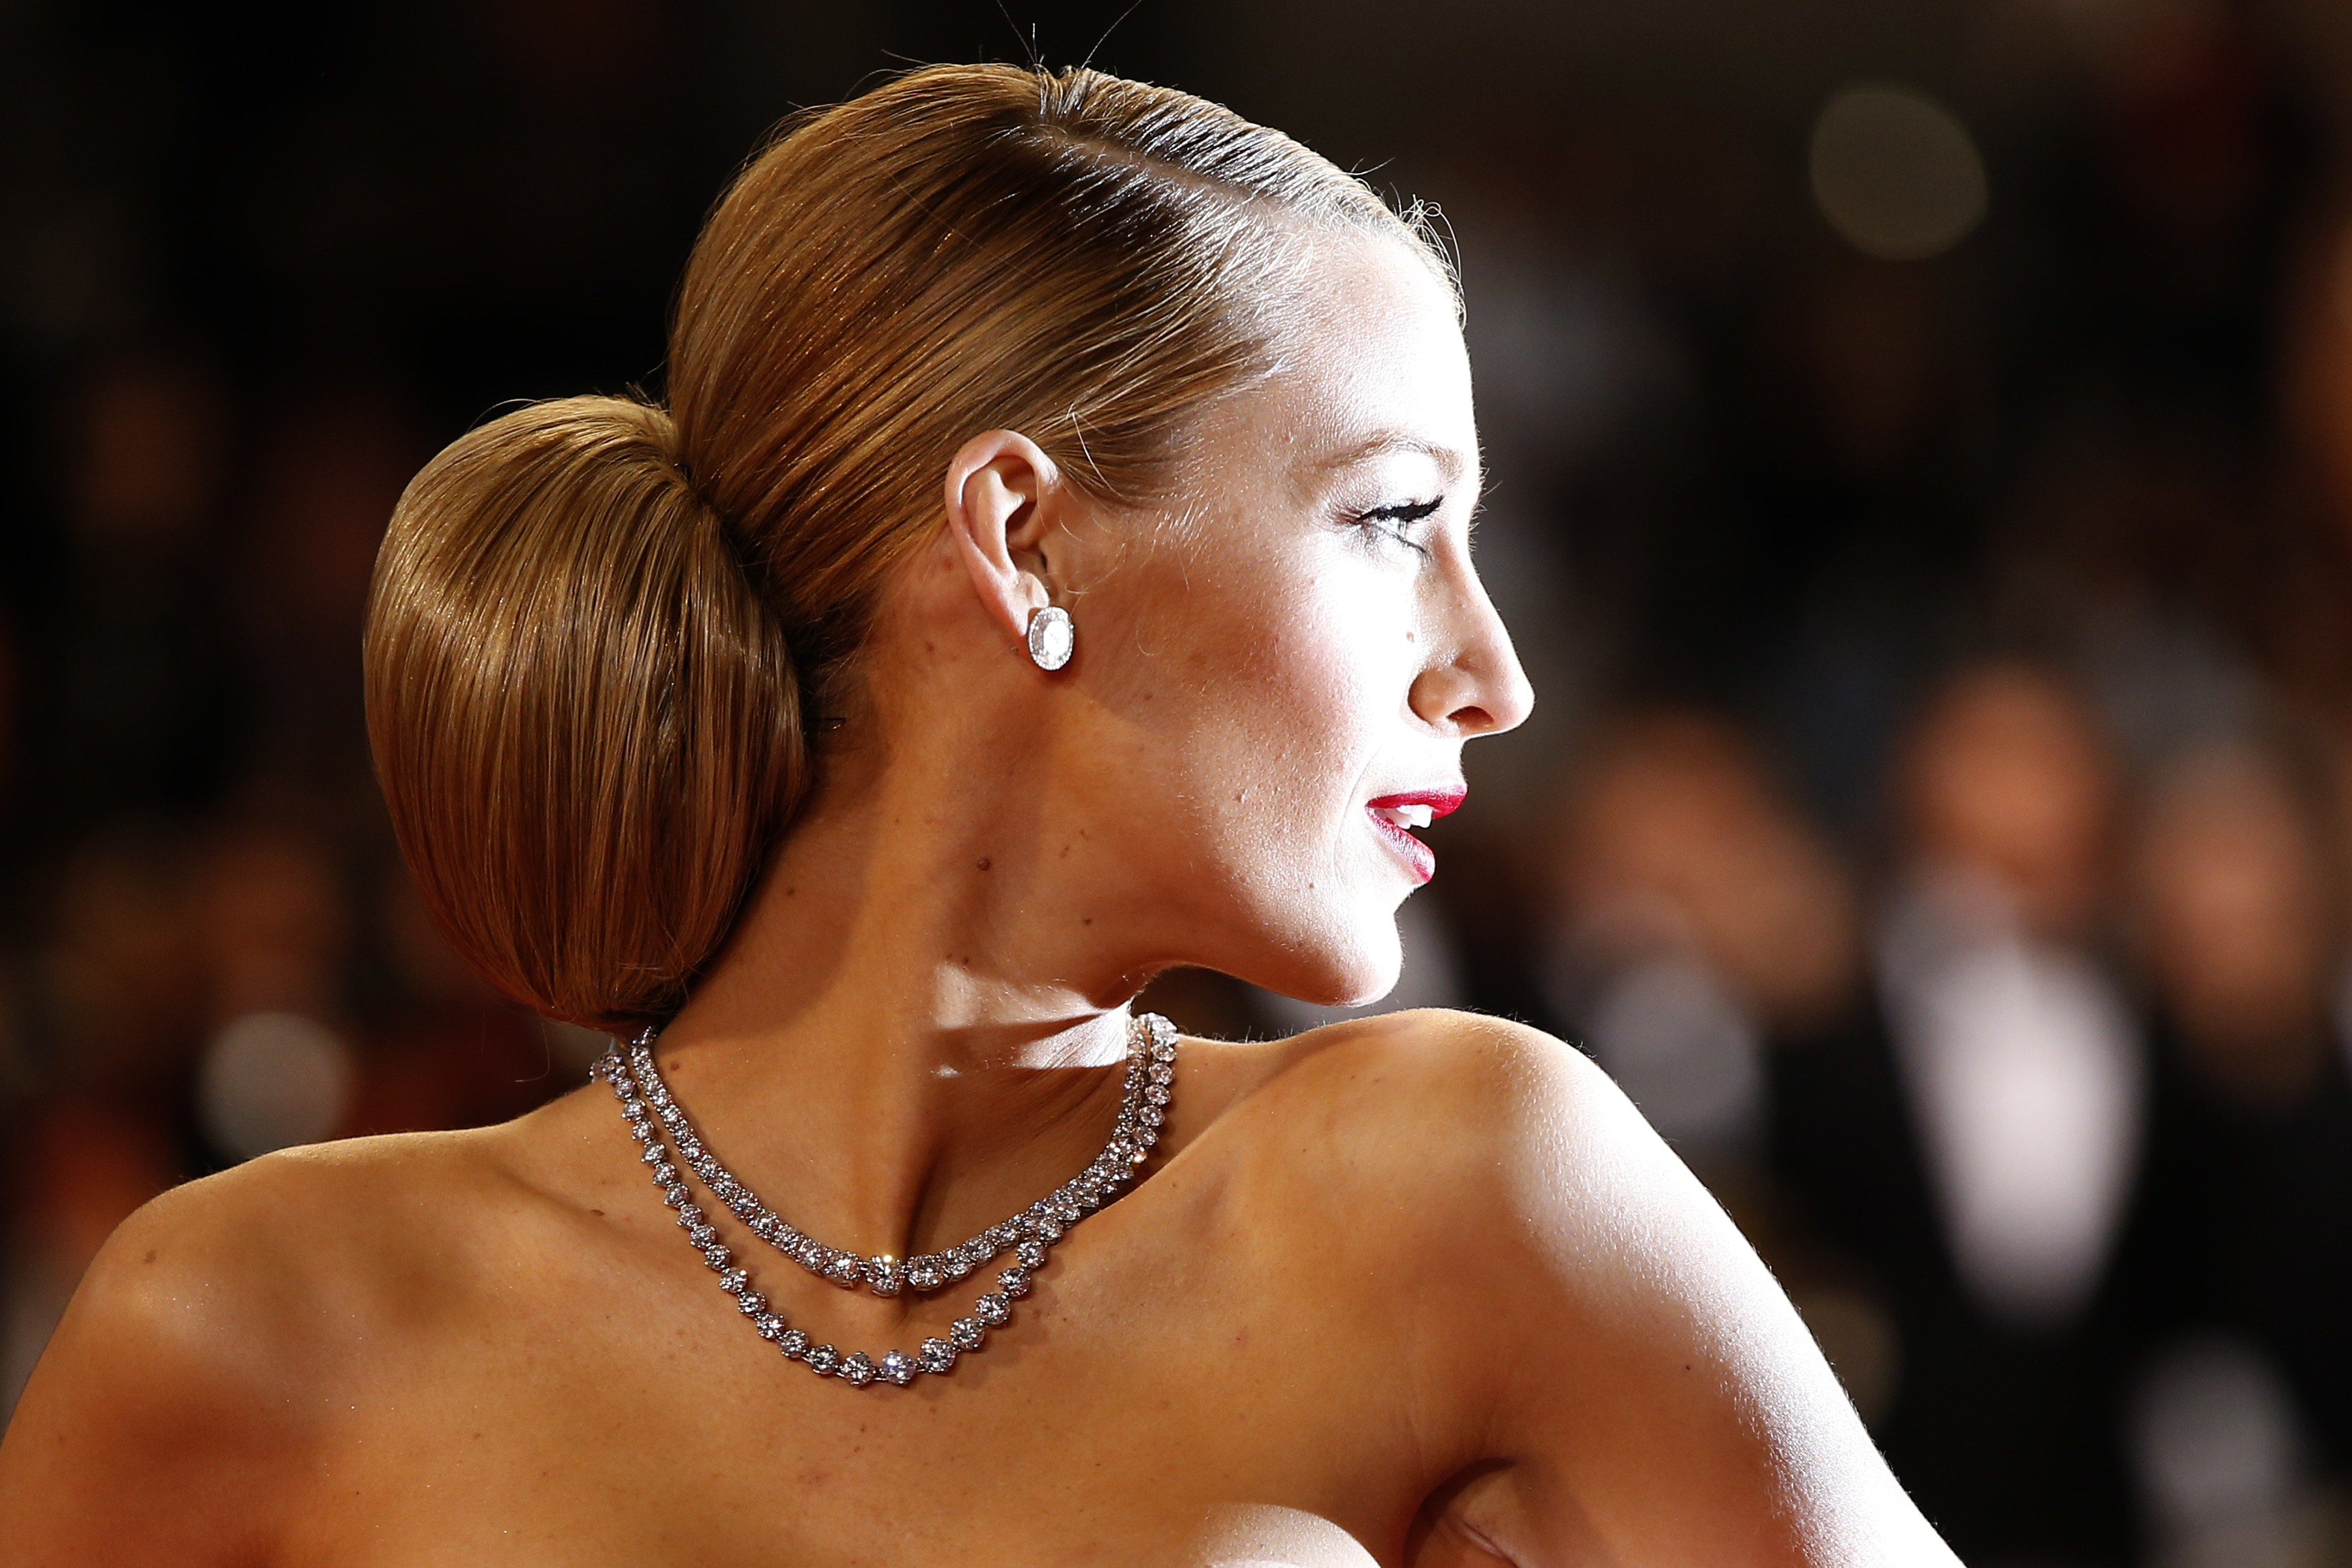 Blake Lively arrives for the screening of the film  Captives  at the 67th edition of the Cannes Film Festival in Cannes, southern France, on May 16, 201.